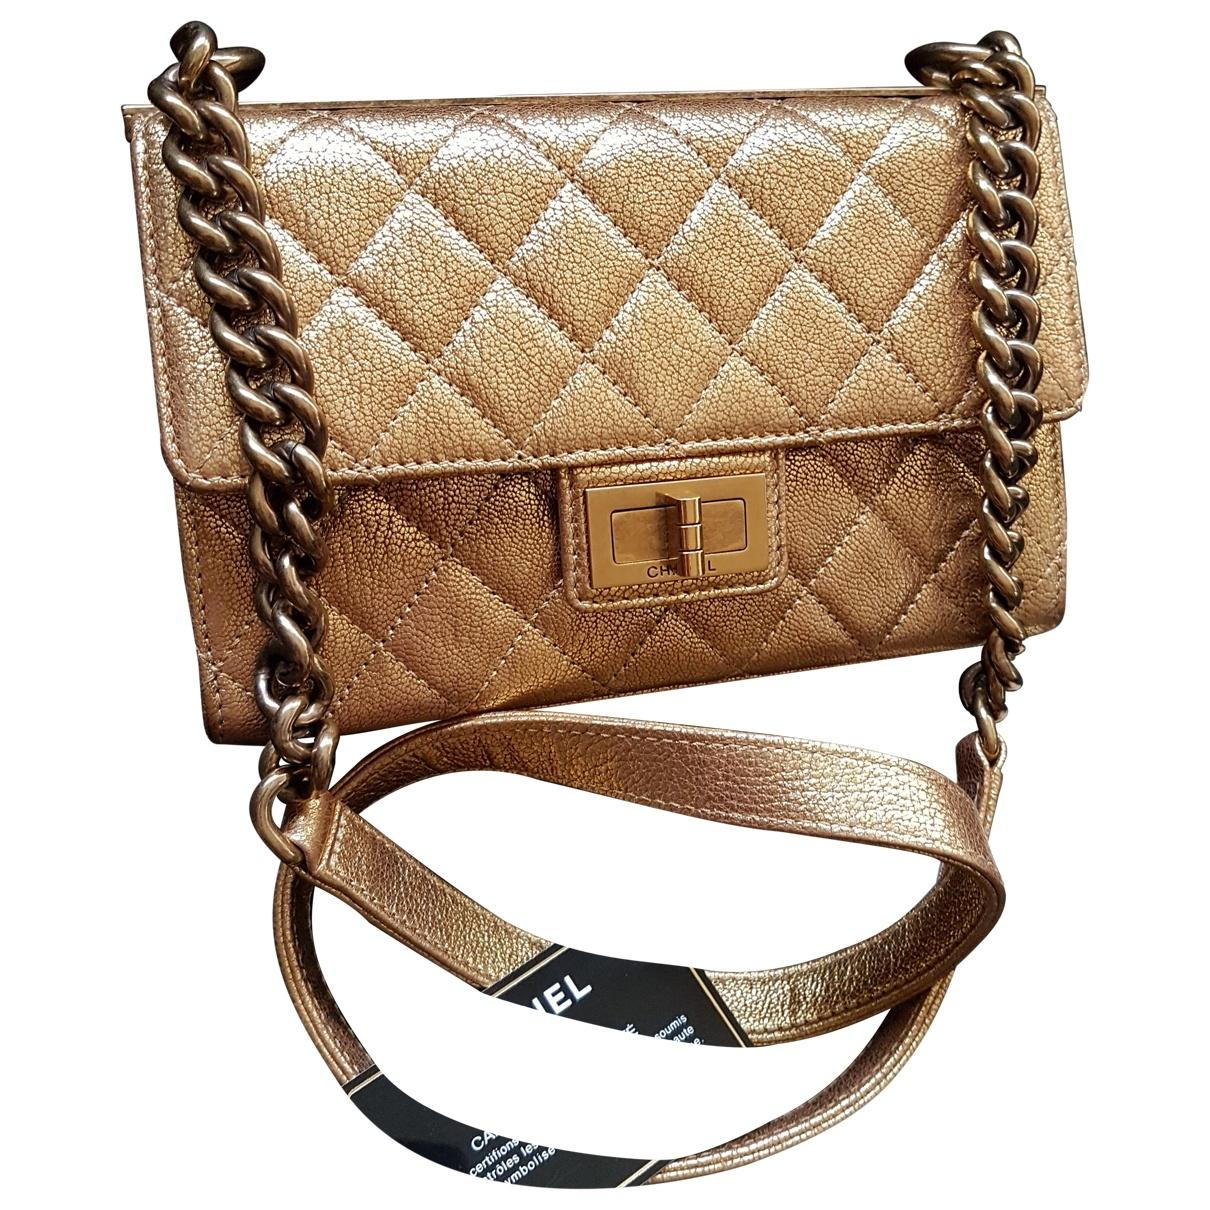 7e13db52217e Lyst - Chanel Pre-owned Gold Leather Handbags in Metallic